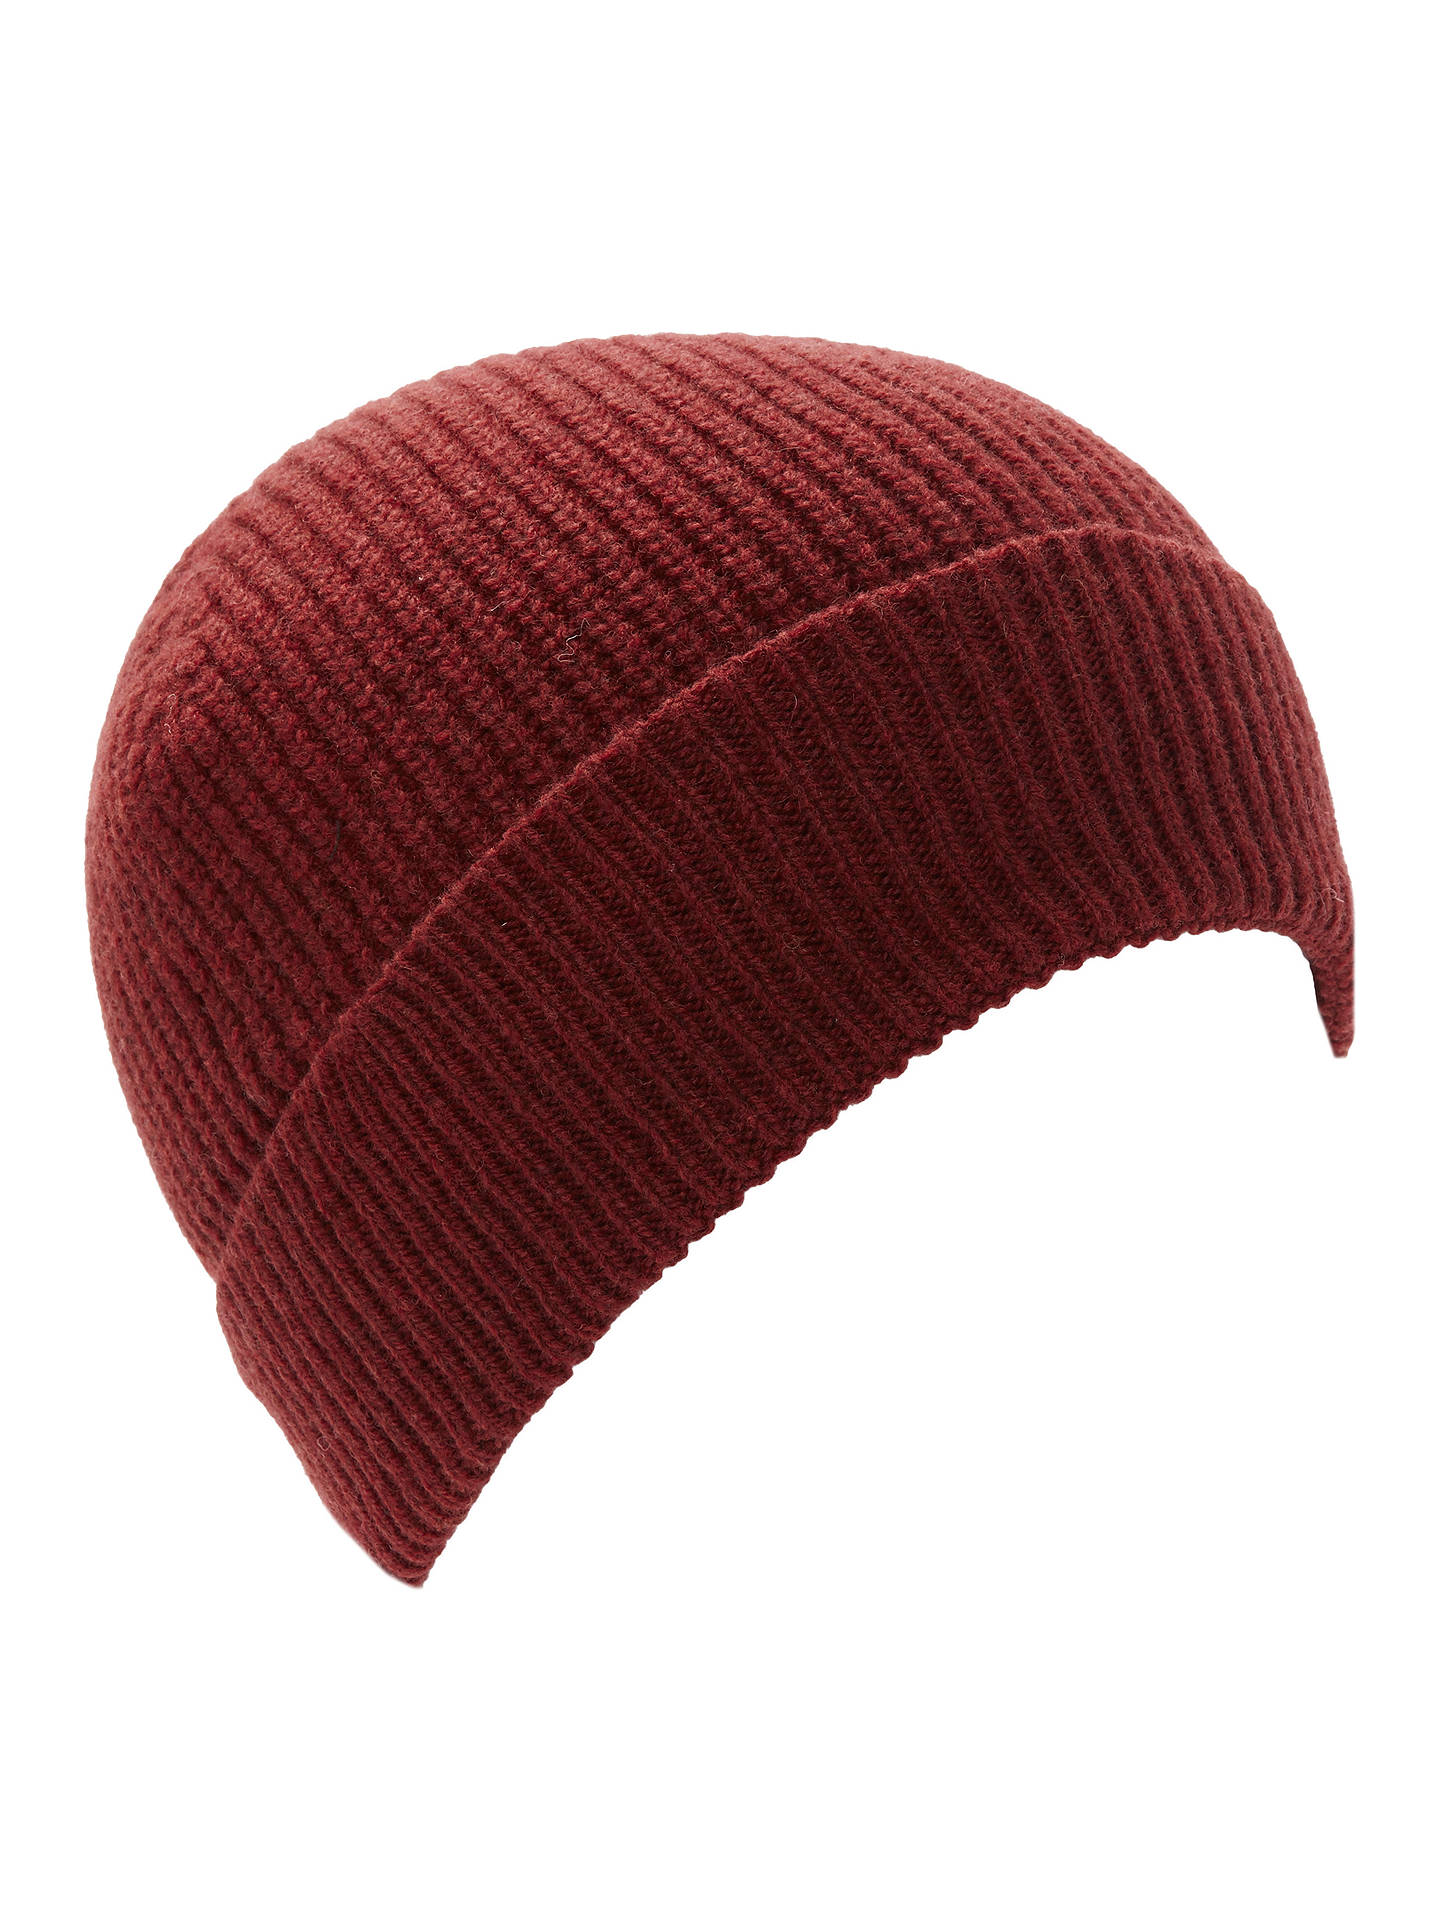 Buy Gloverall for John Lewis & Partners Beanie Hat, One Size, Otono Red Online at johnlewis.com